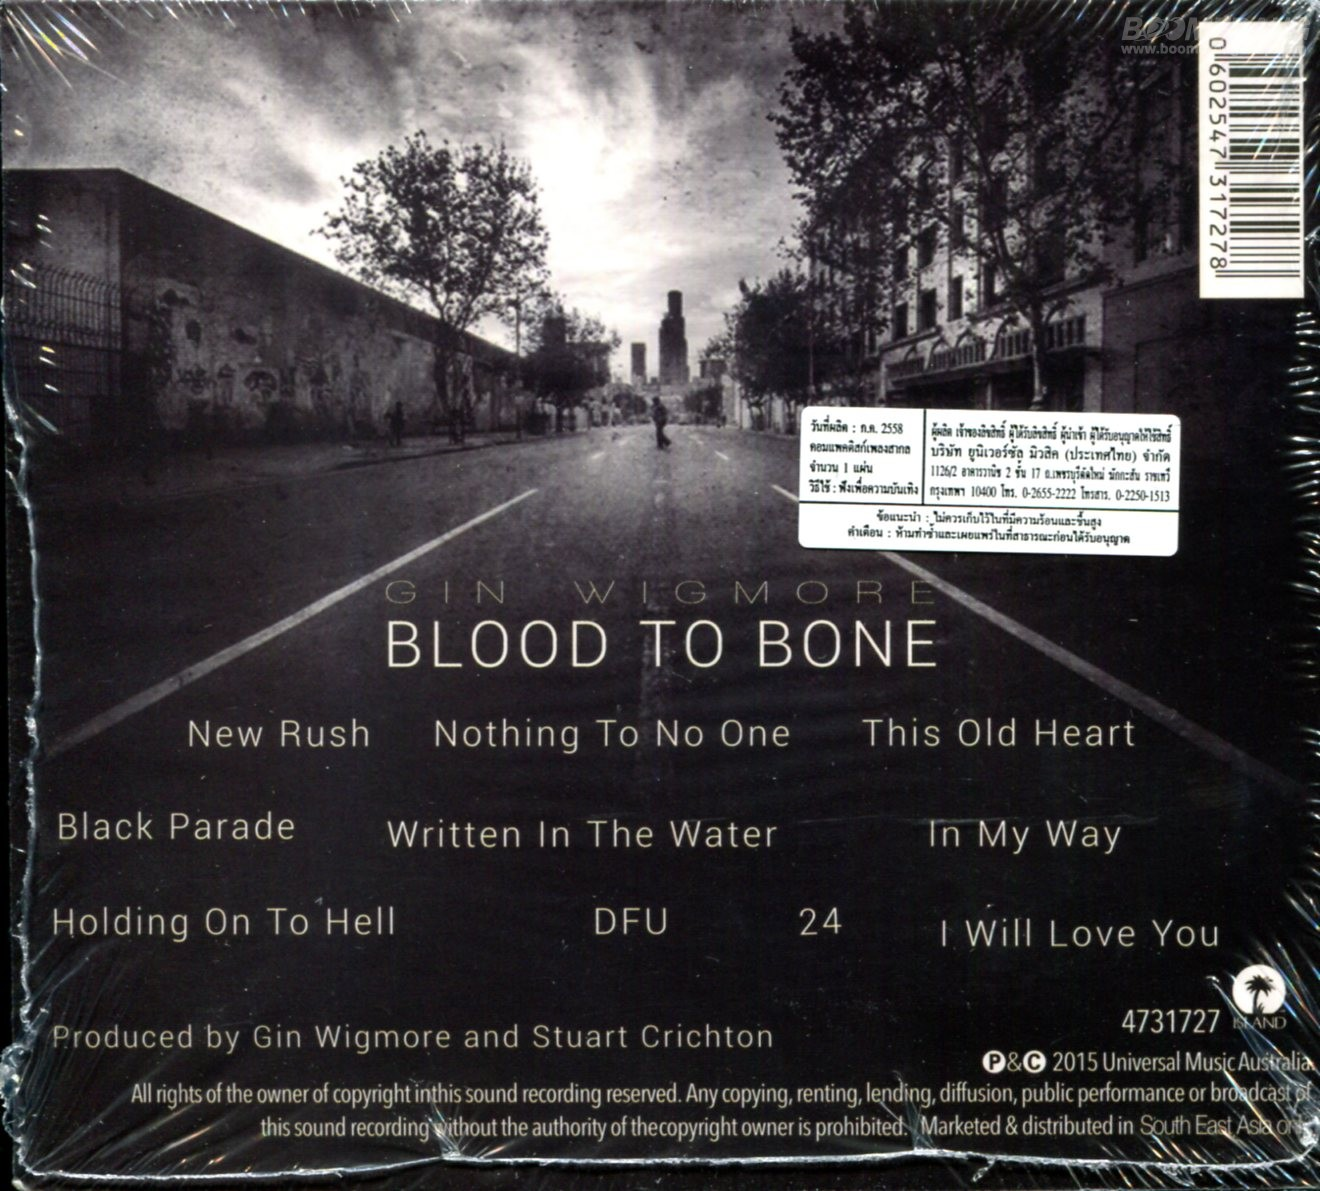 gin wigmore blood to bone boomerangshop com thailand  gin wigmore holding on to hell adobe.php #5